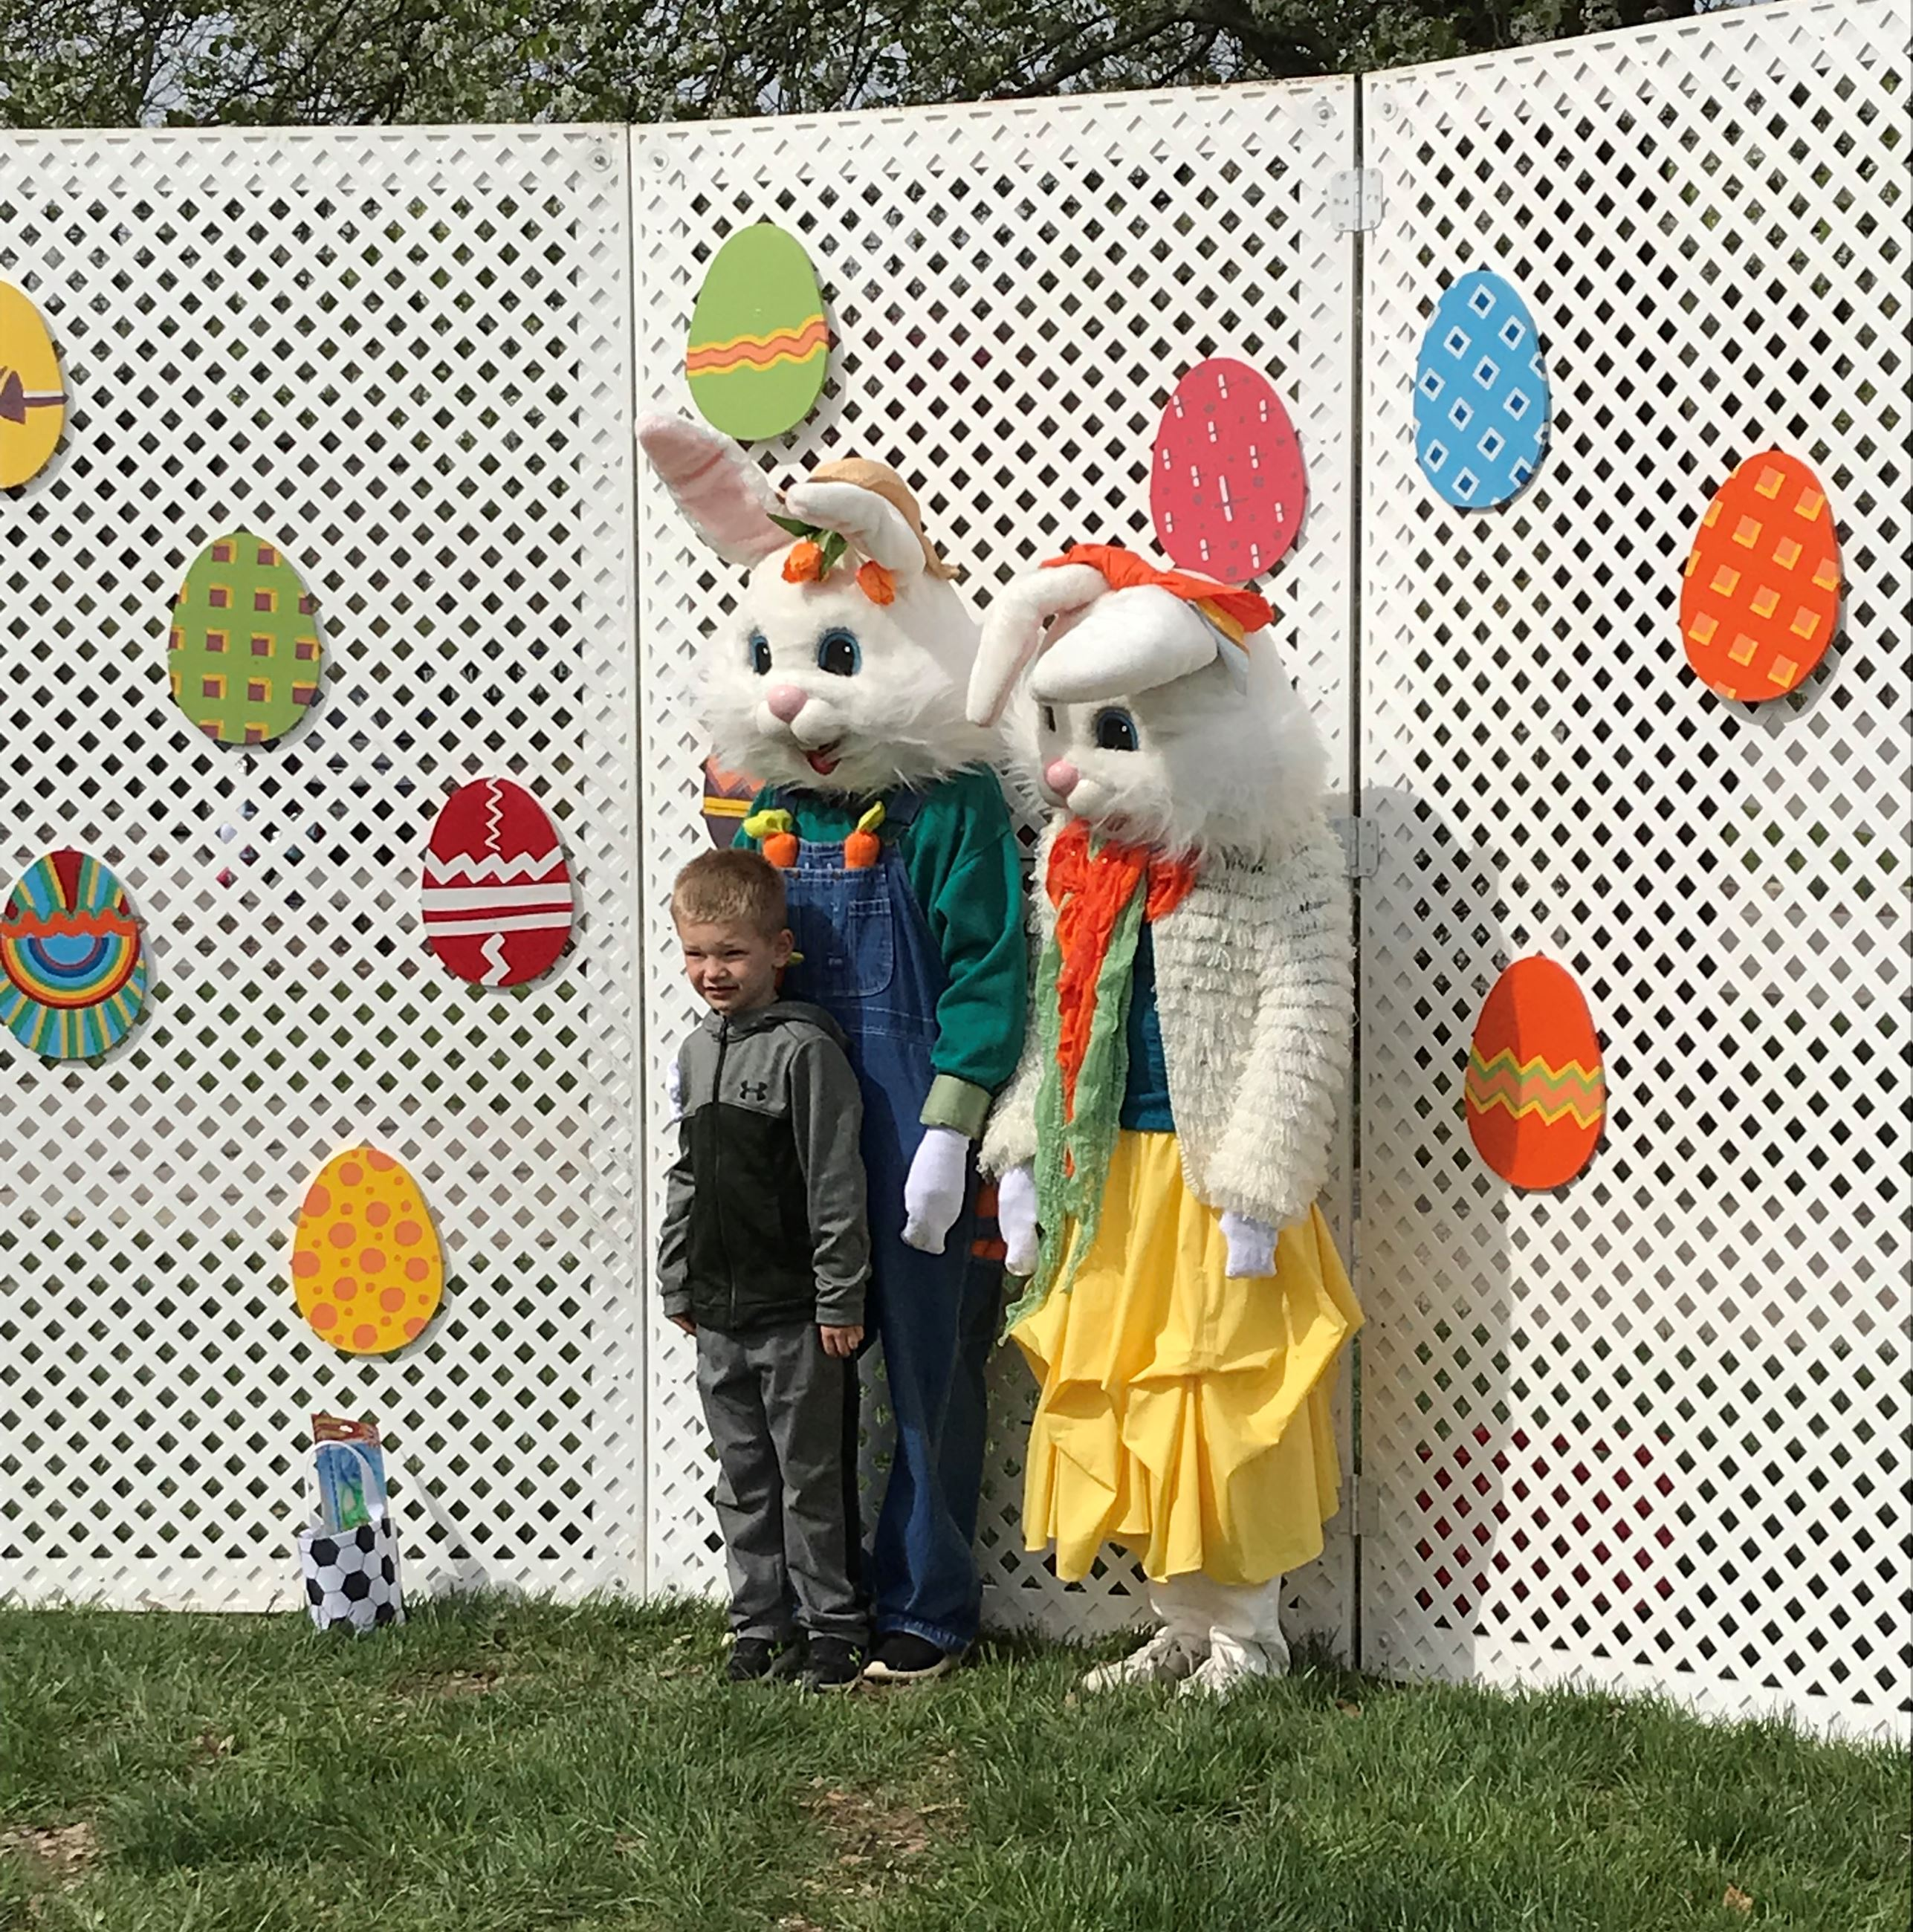 Easter Bunnies and little boy